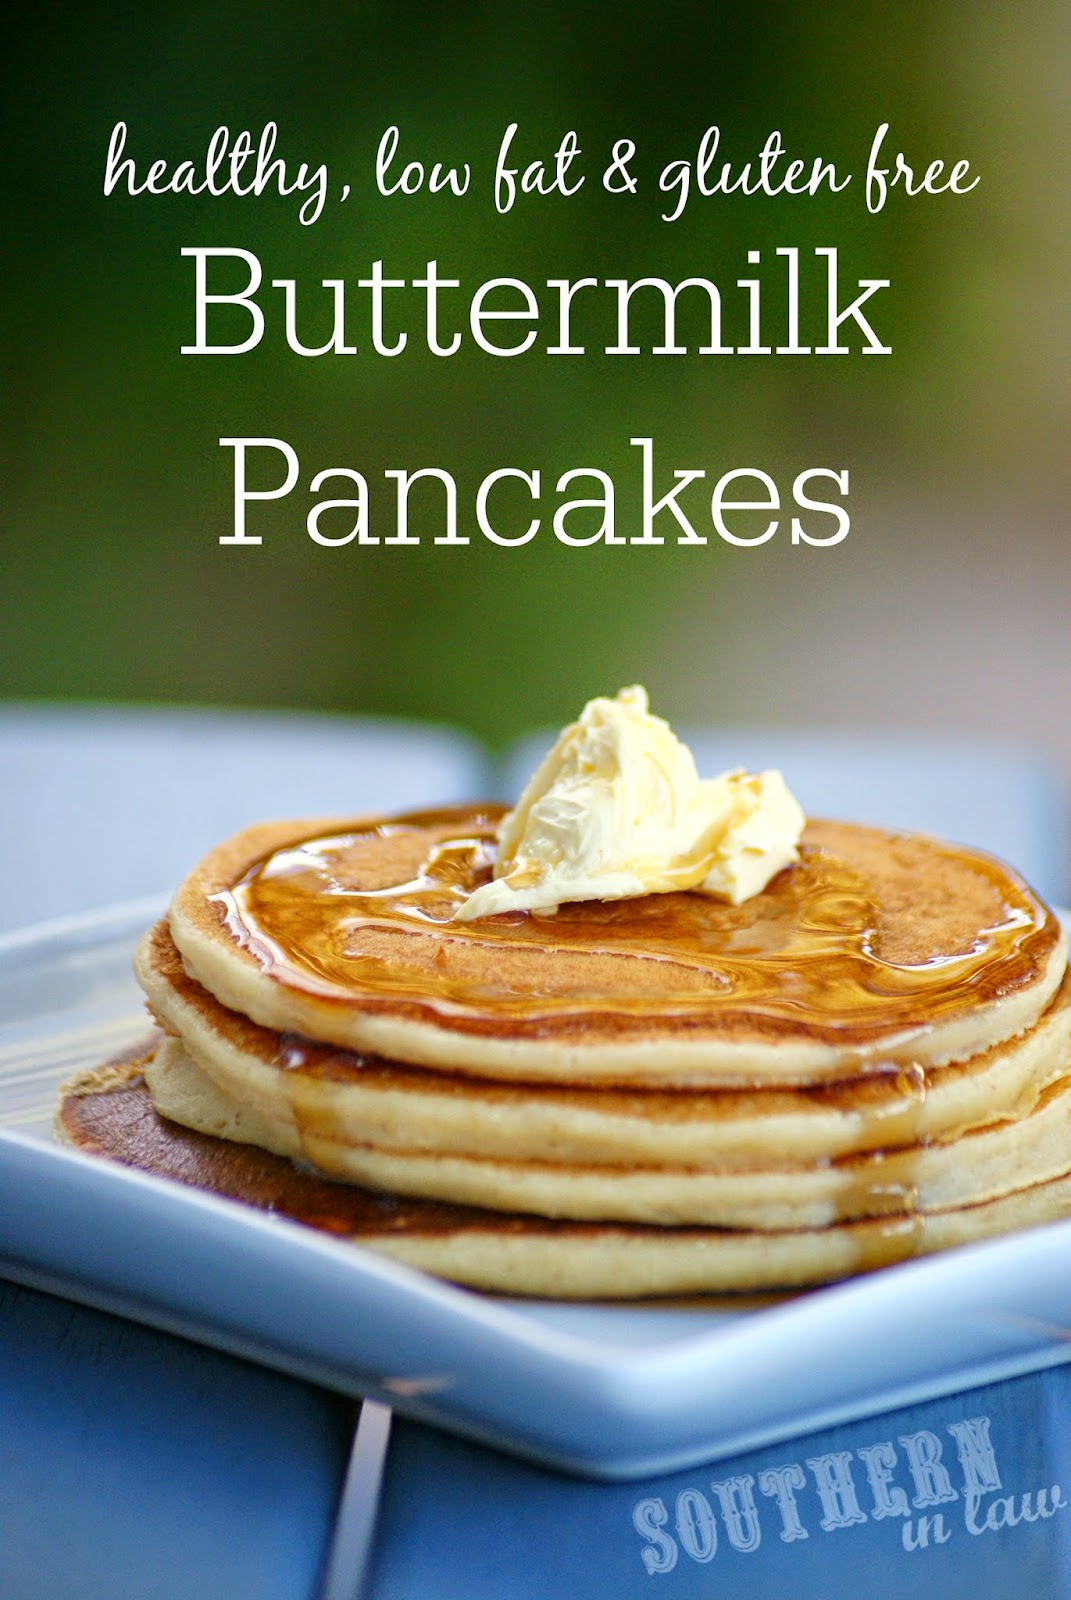 Healthy Buttermilk Pancakes Recipe